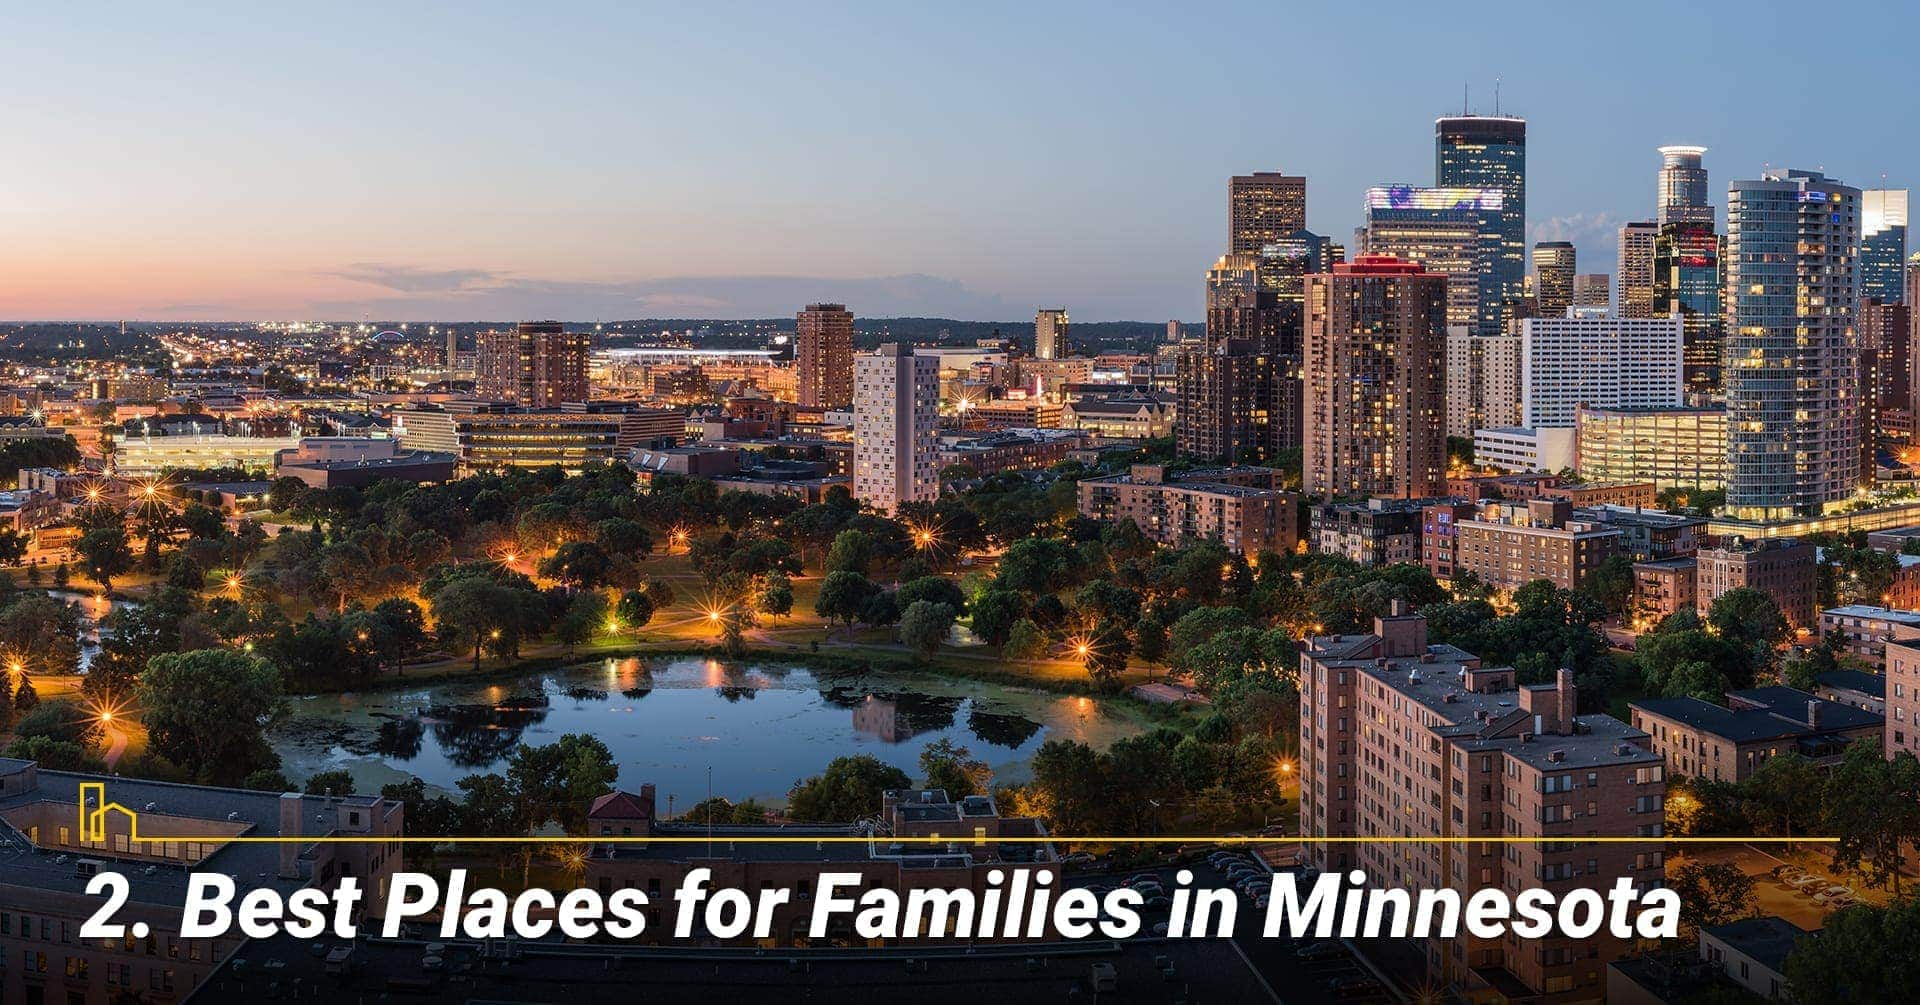 Best Places for Families in Minnesota